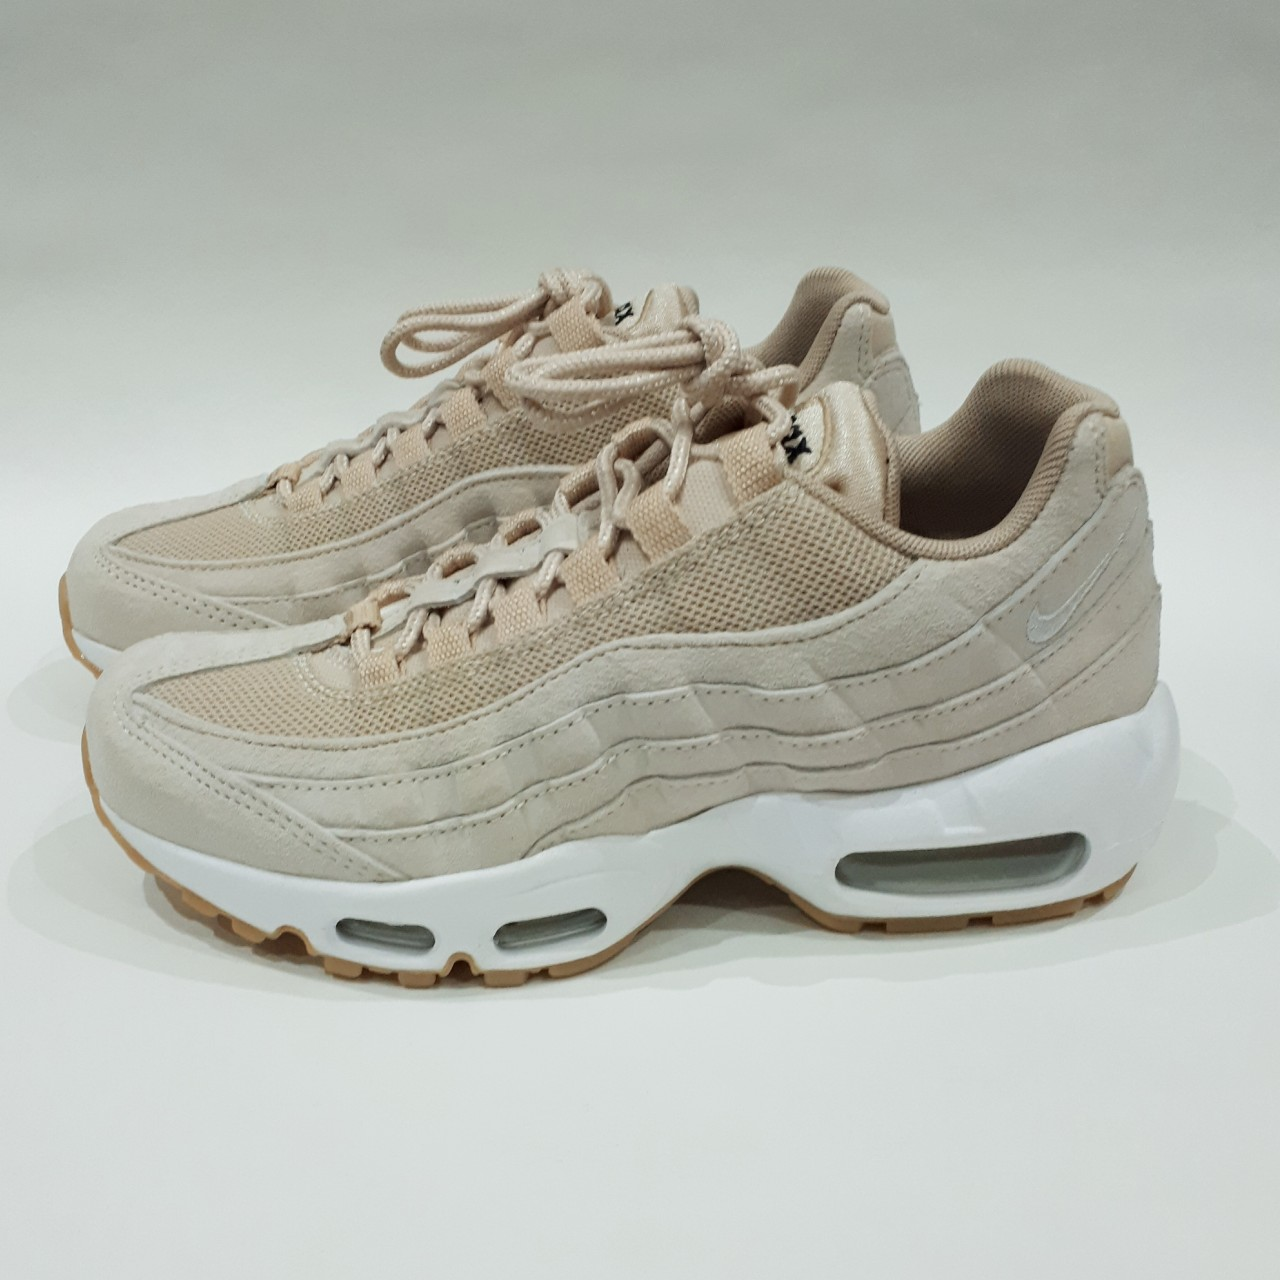 on sale d0c8f 1e62d Oatmeal/Linen-White Nike Air Max 95 SD. Size UK 3.5 ...